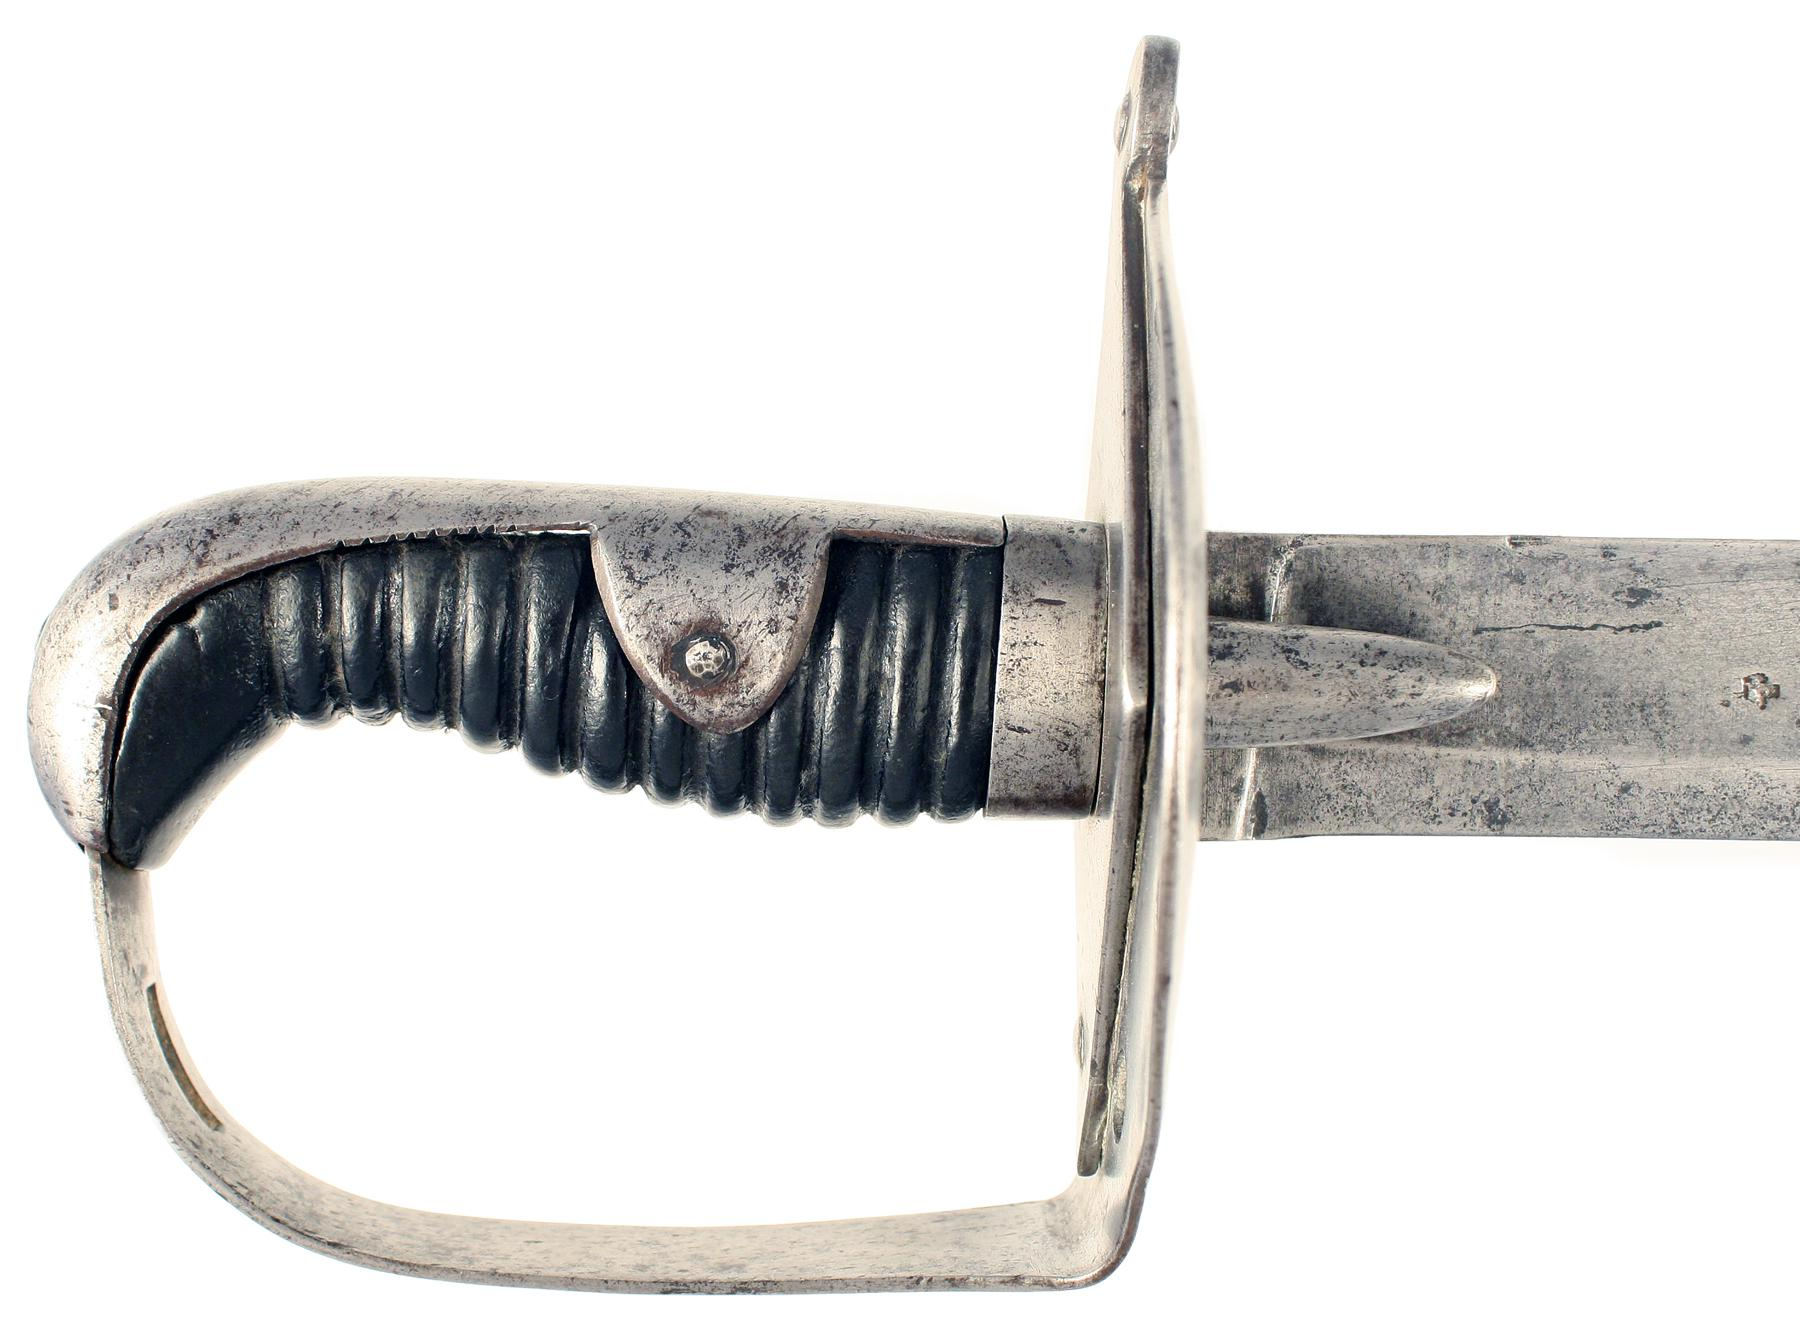 A 1796 Heavy Cavalry Sword